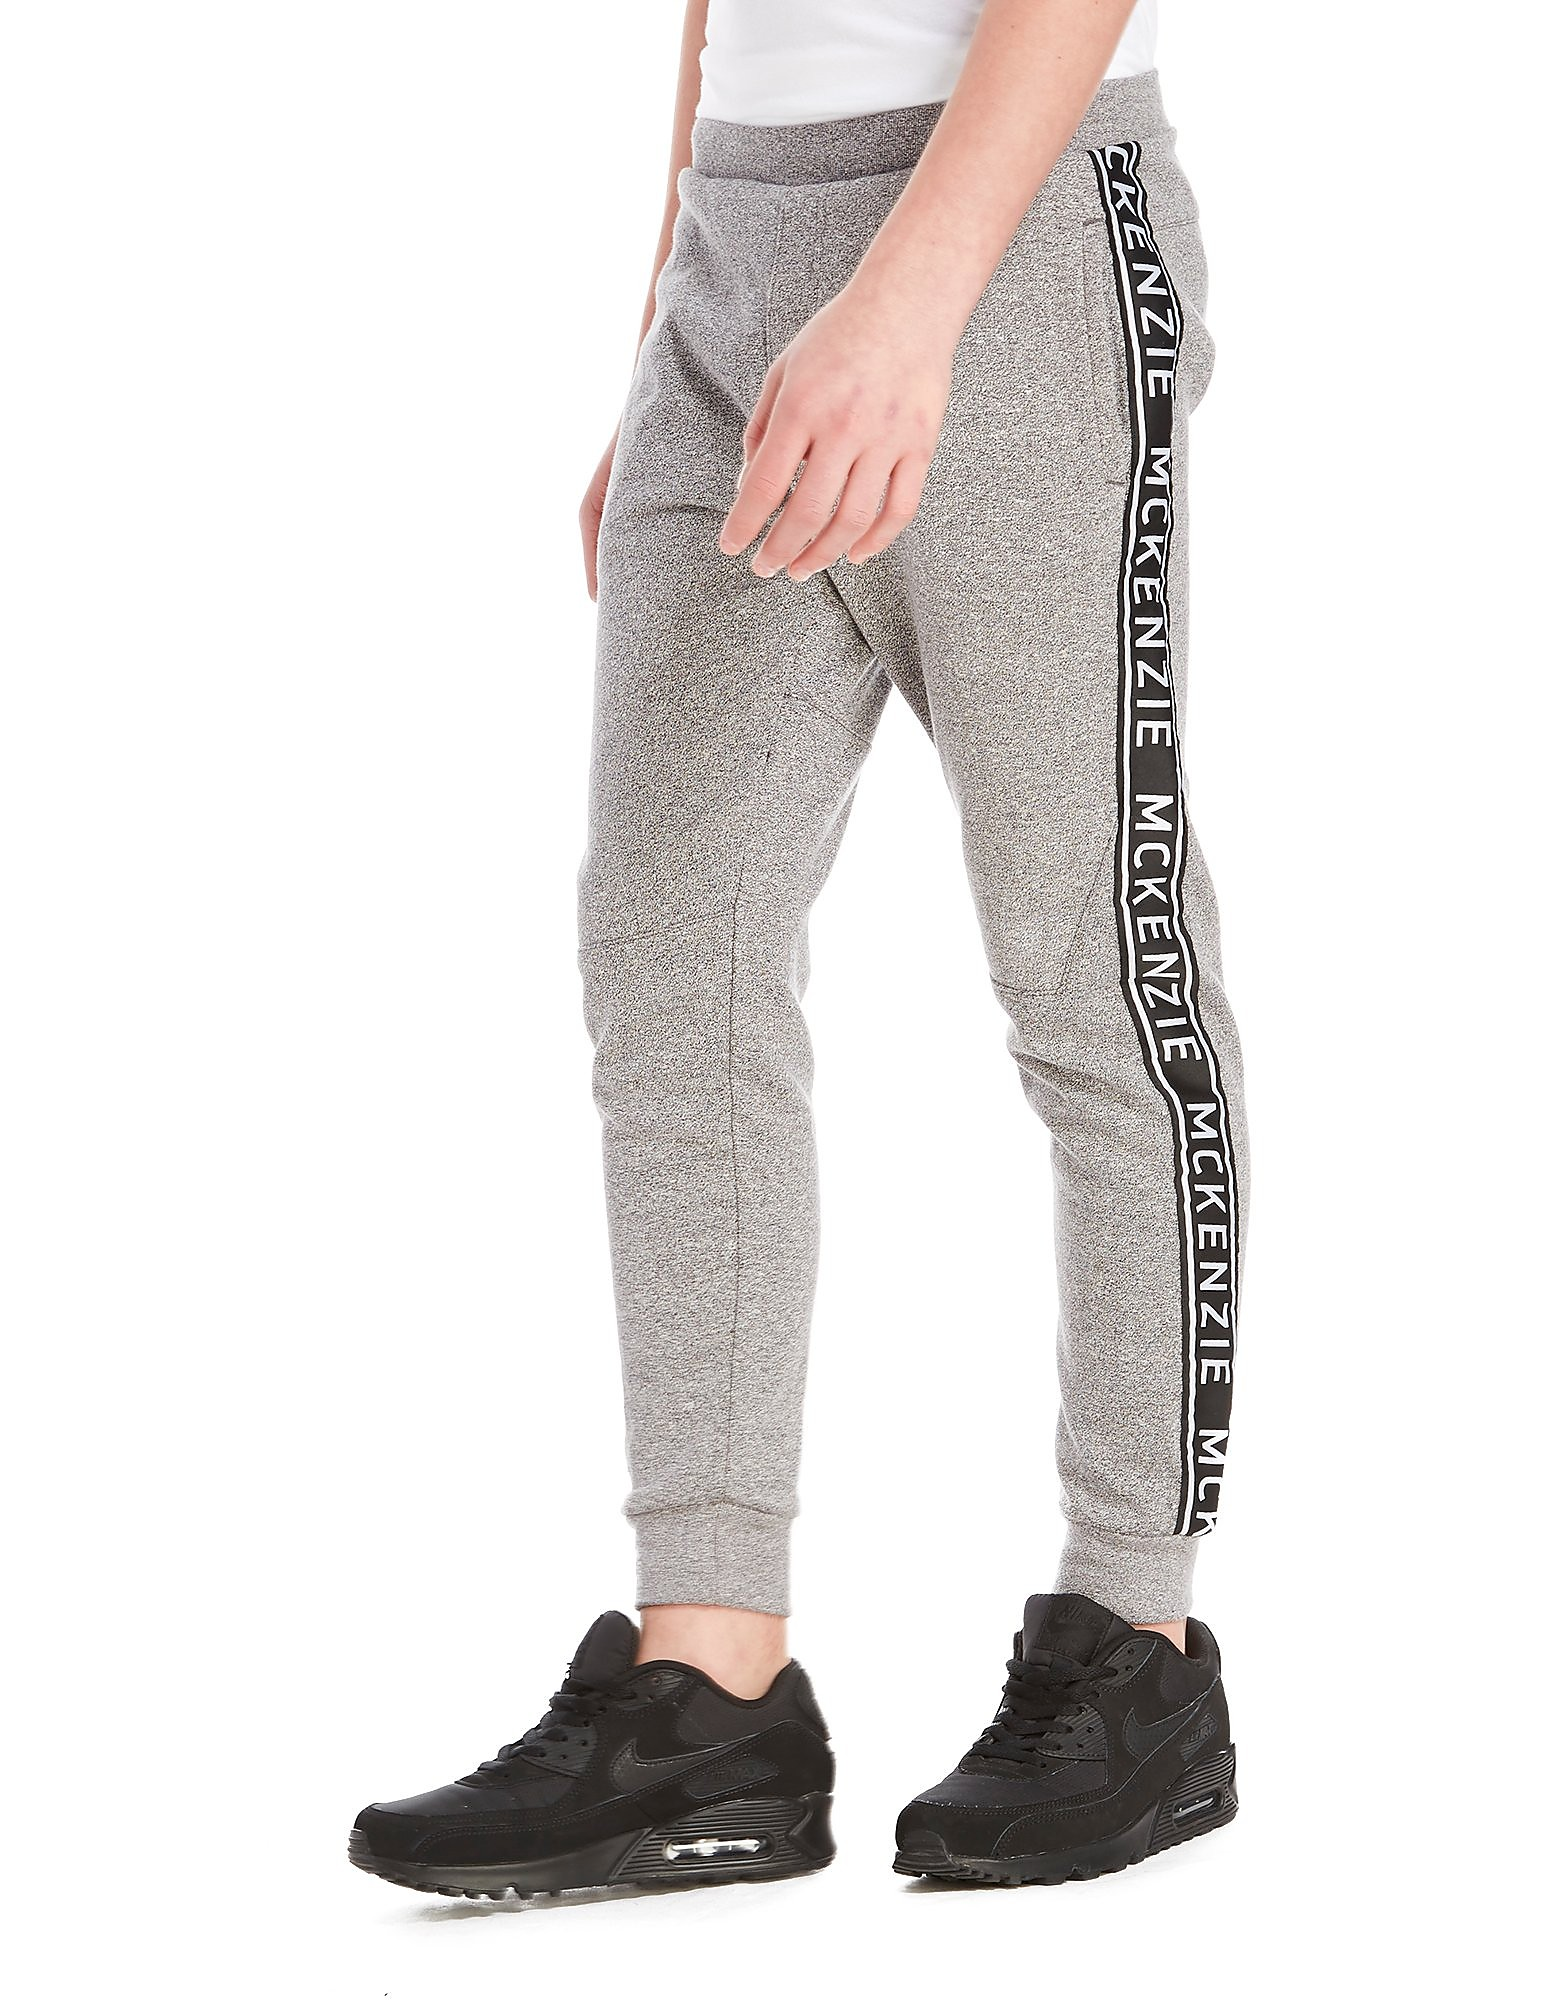 McKenzie Bensen Fleece Pants Junior